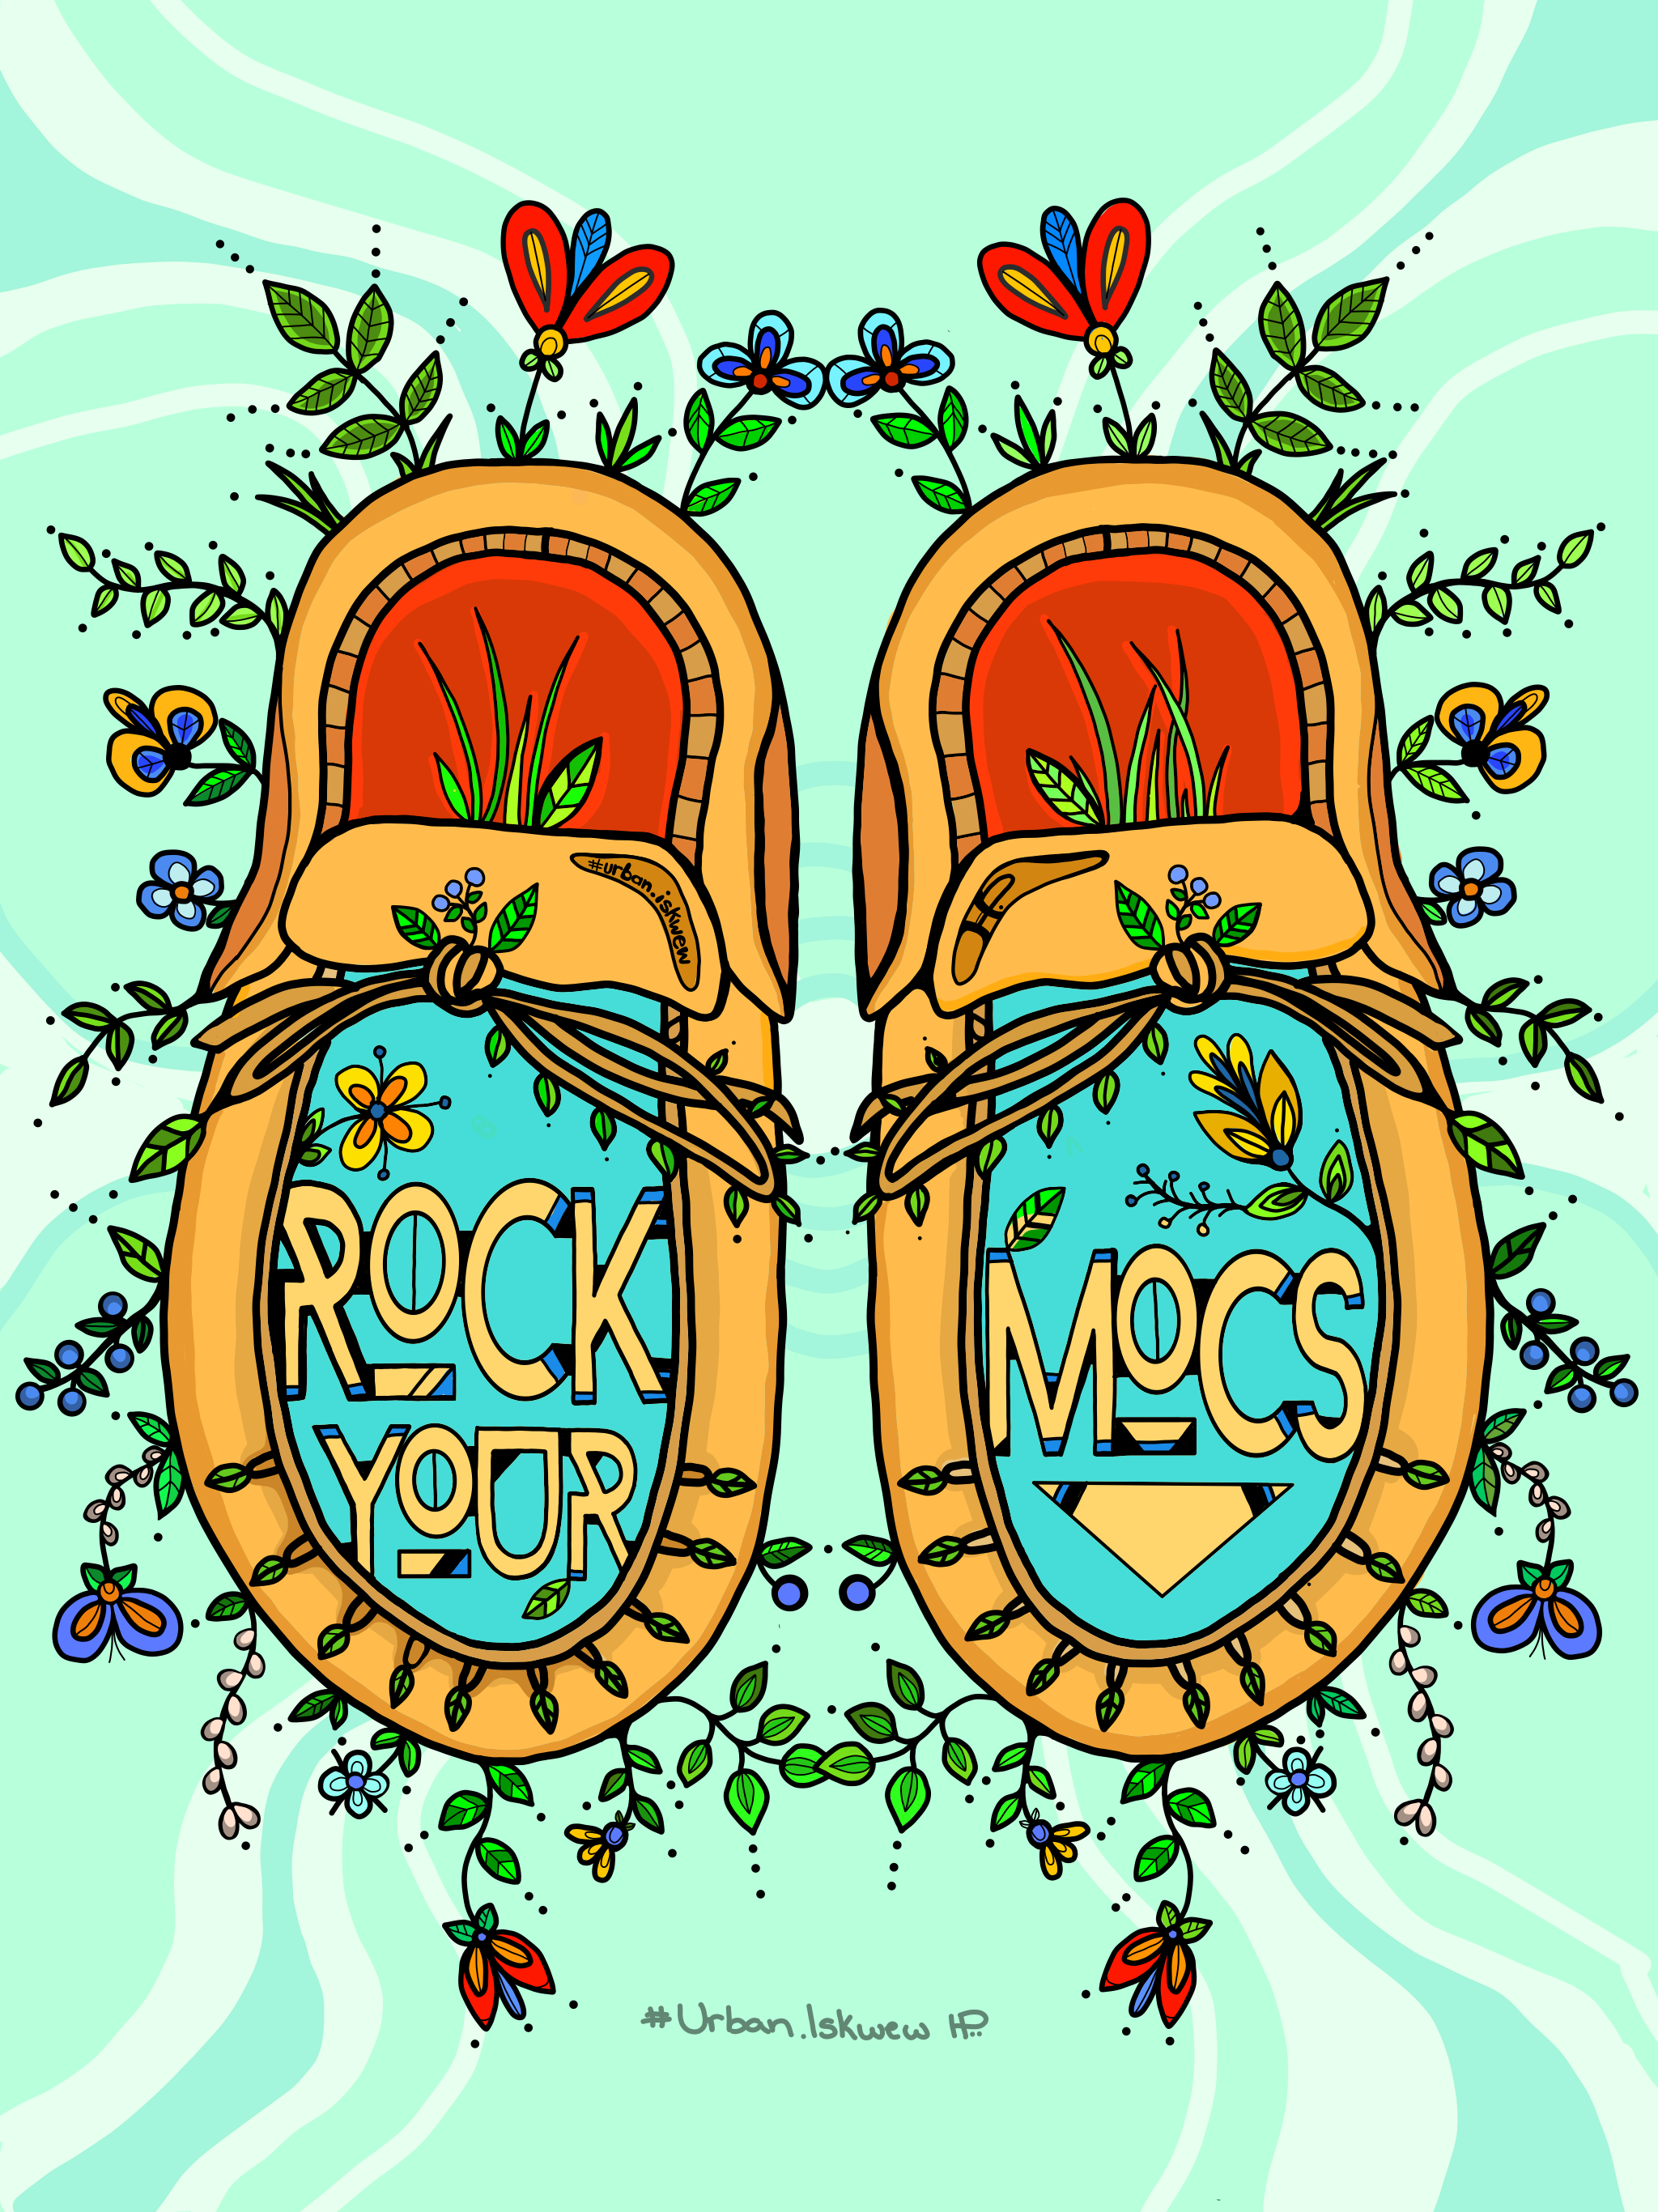 ROCK YOUR MOCS